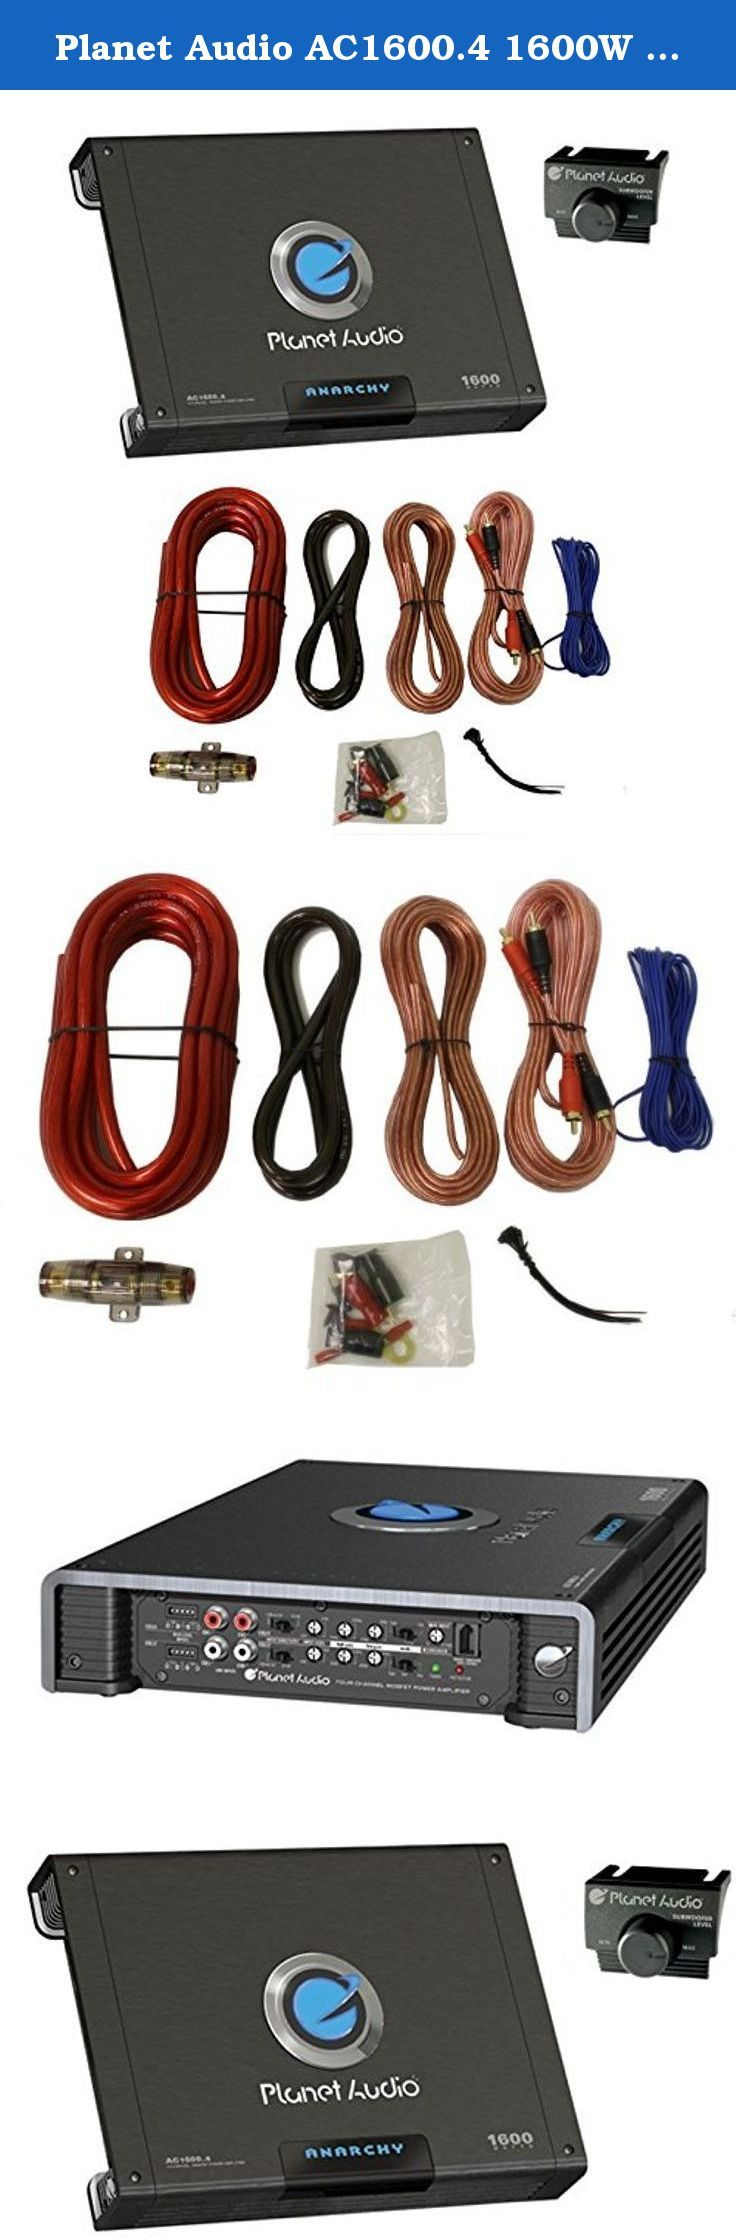 Planet audio ac1600 4 1600w 4 ch amplifier amp kit package